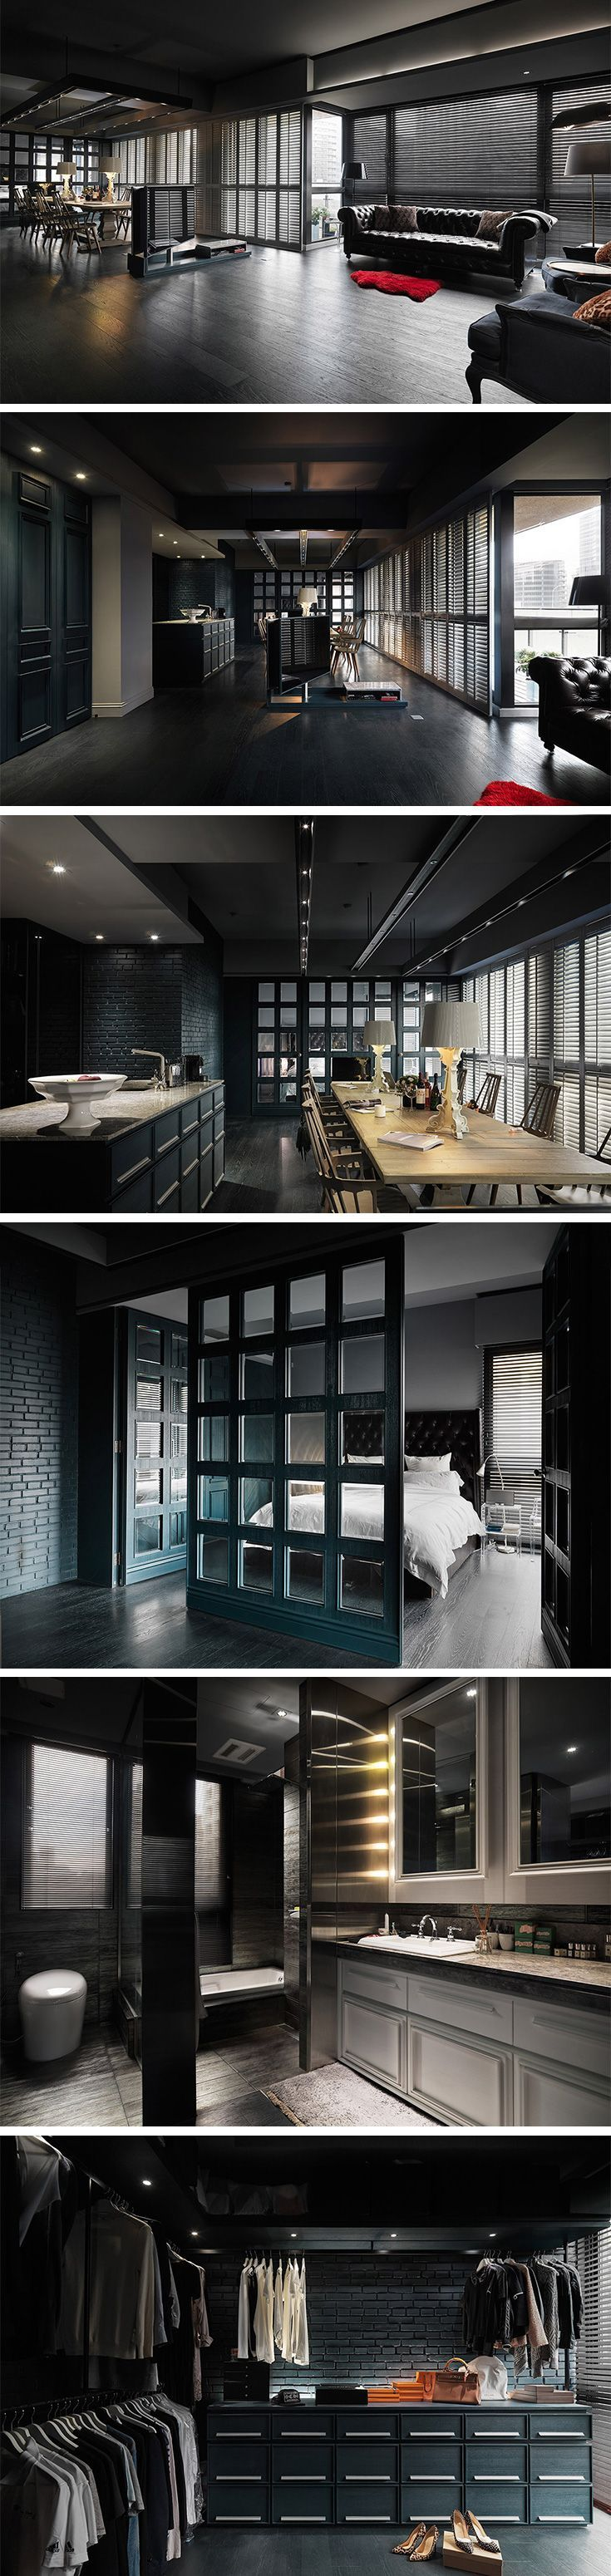 D'life home interiors ernakulam kerala  best penthouses and lofts images on pinterest  home ideas